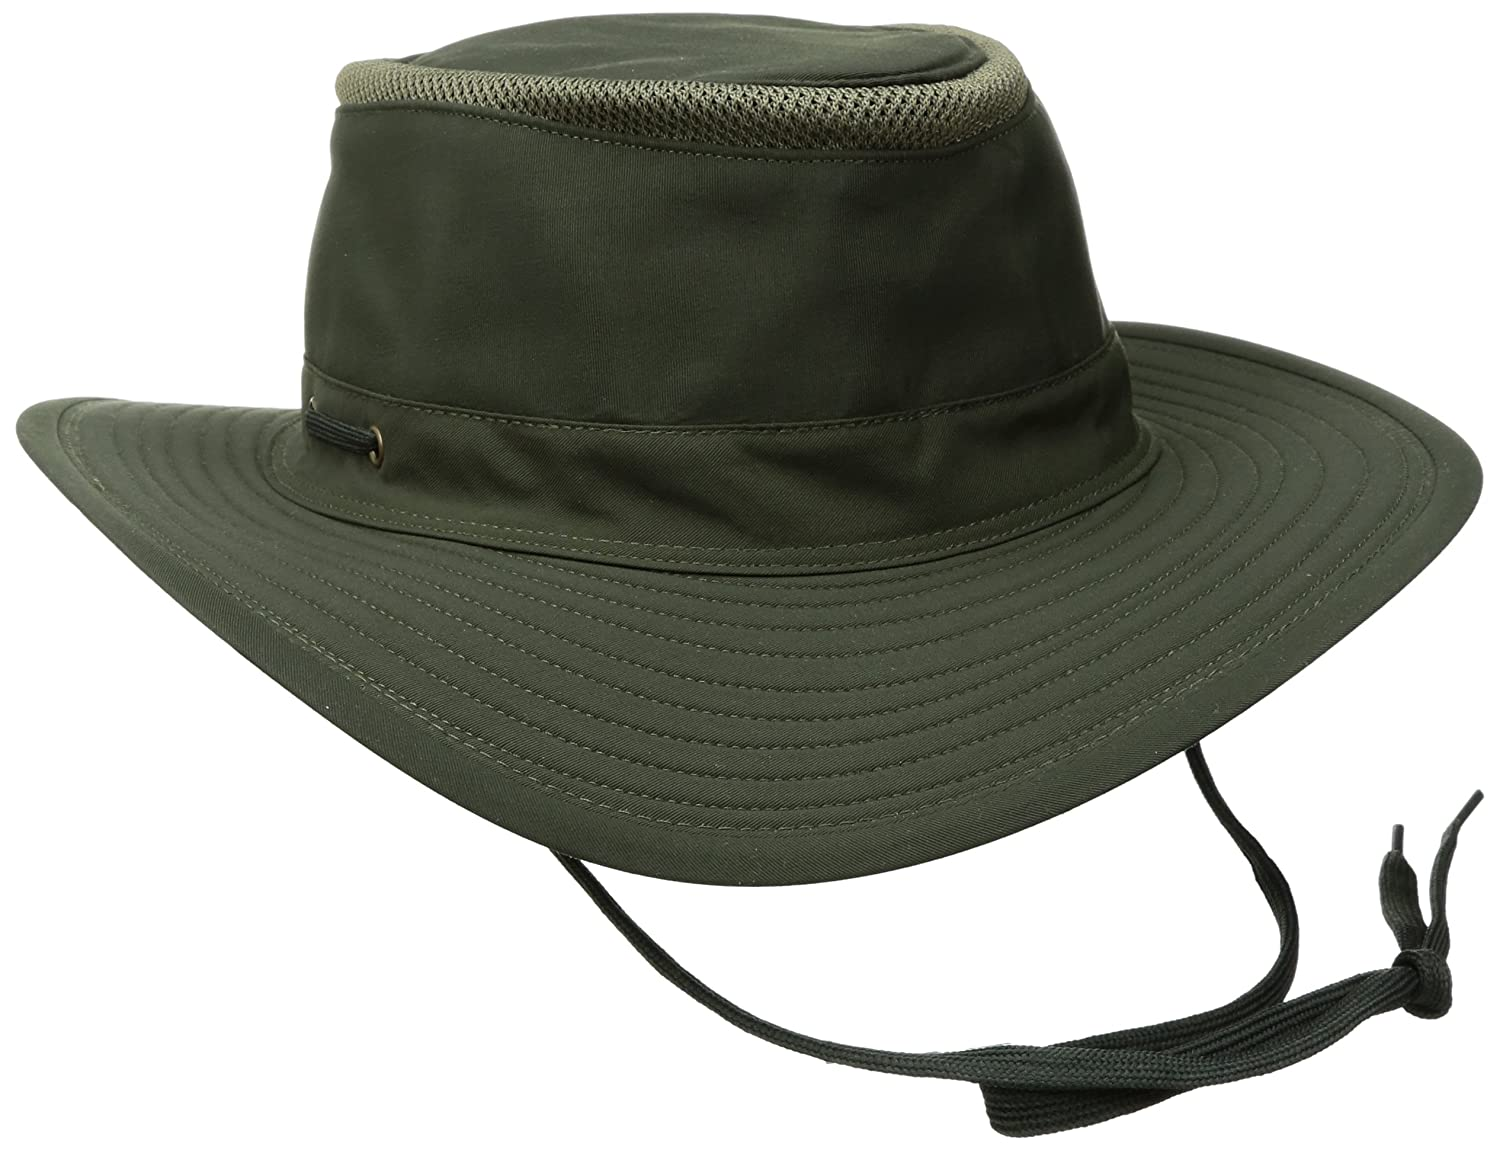 Henschel 10 Pt. Multi-Feature Booney Henschel Hats 5552